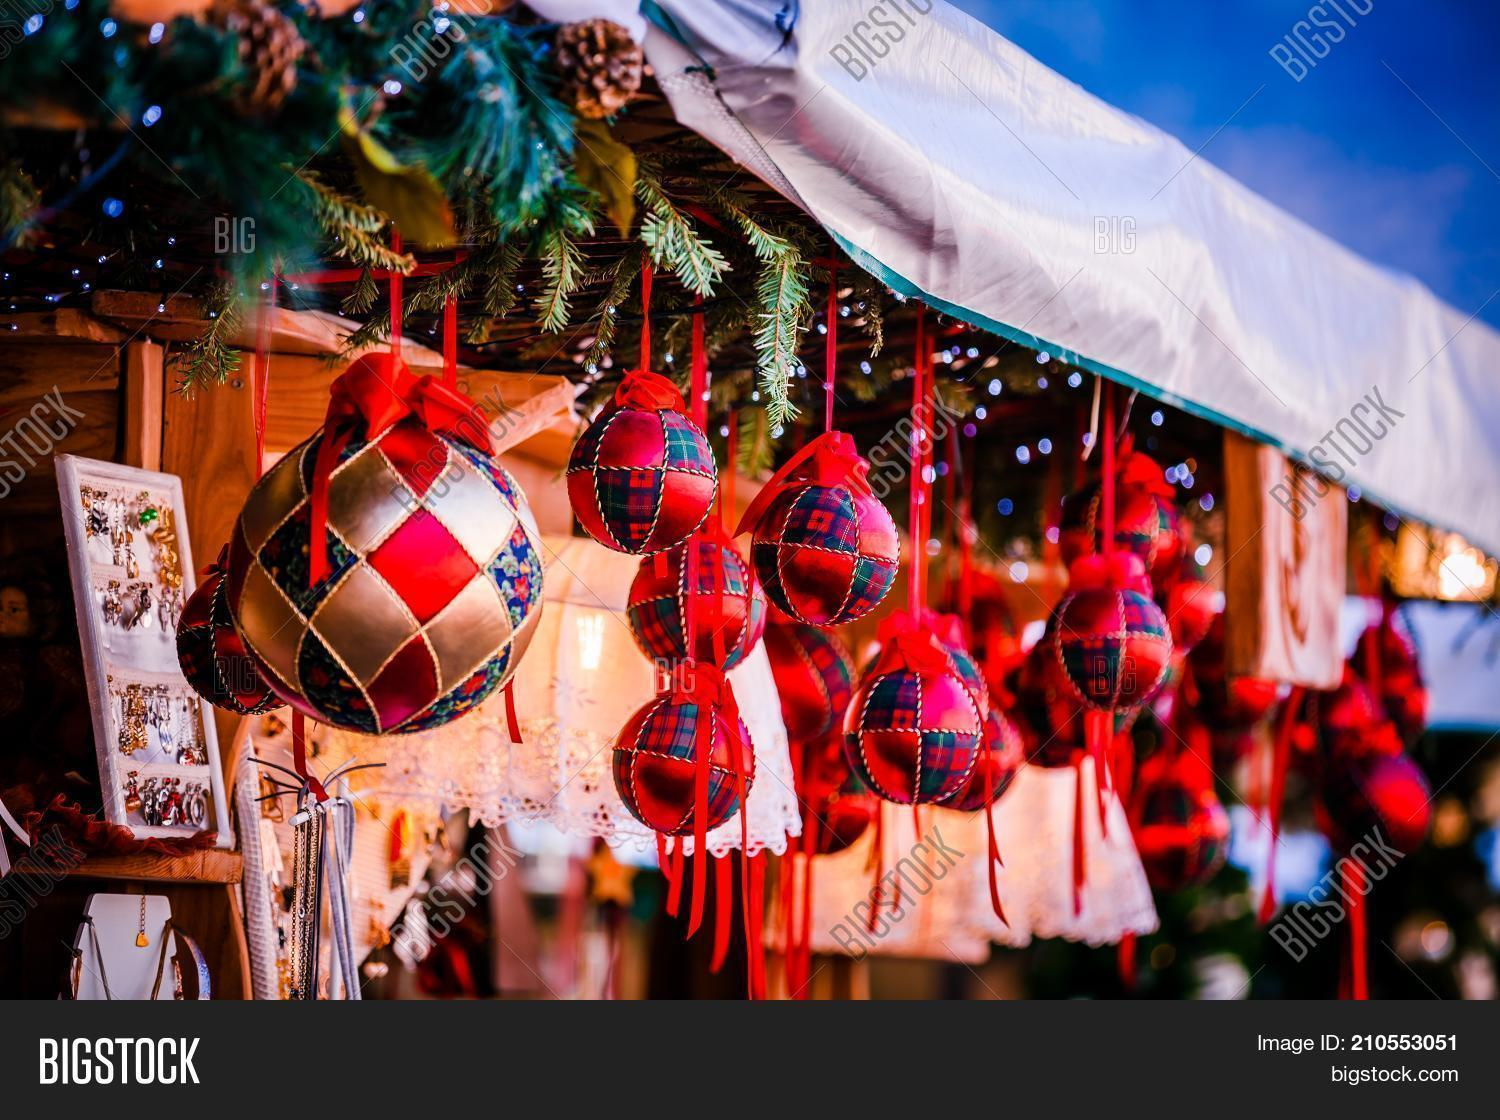 Christmas In Italy Decorations.Christmas Decorations Image Photo Free Trial Bigstock